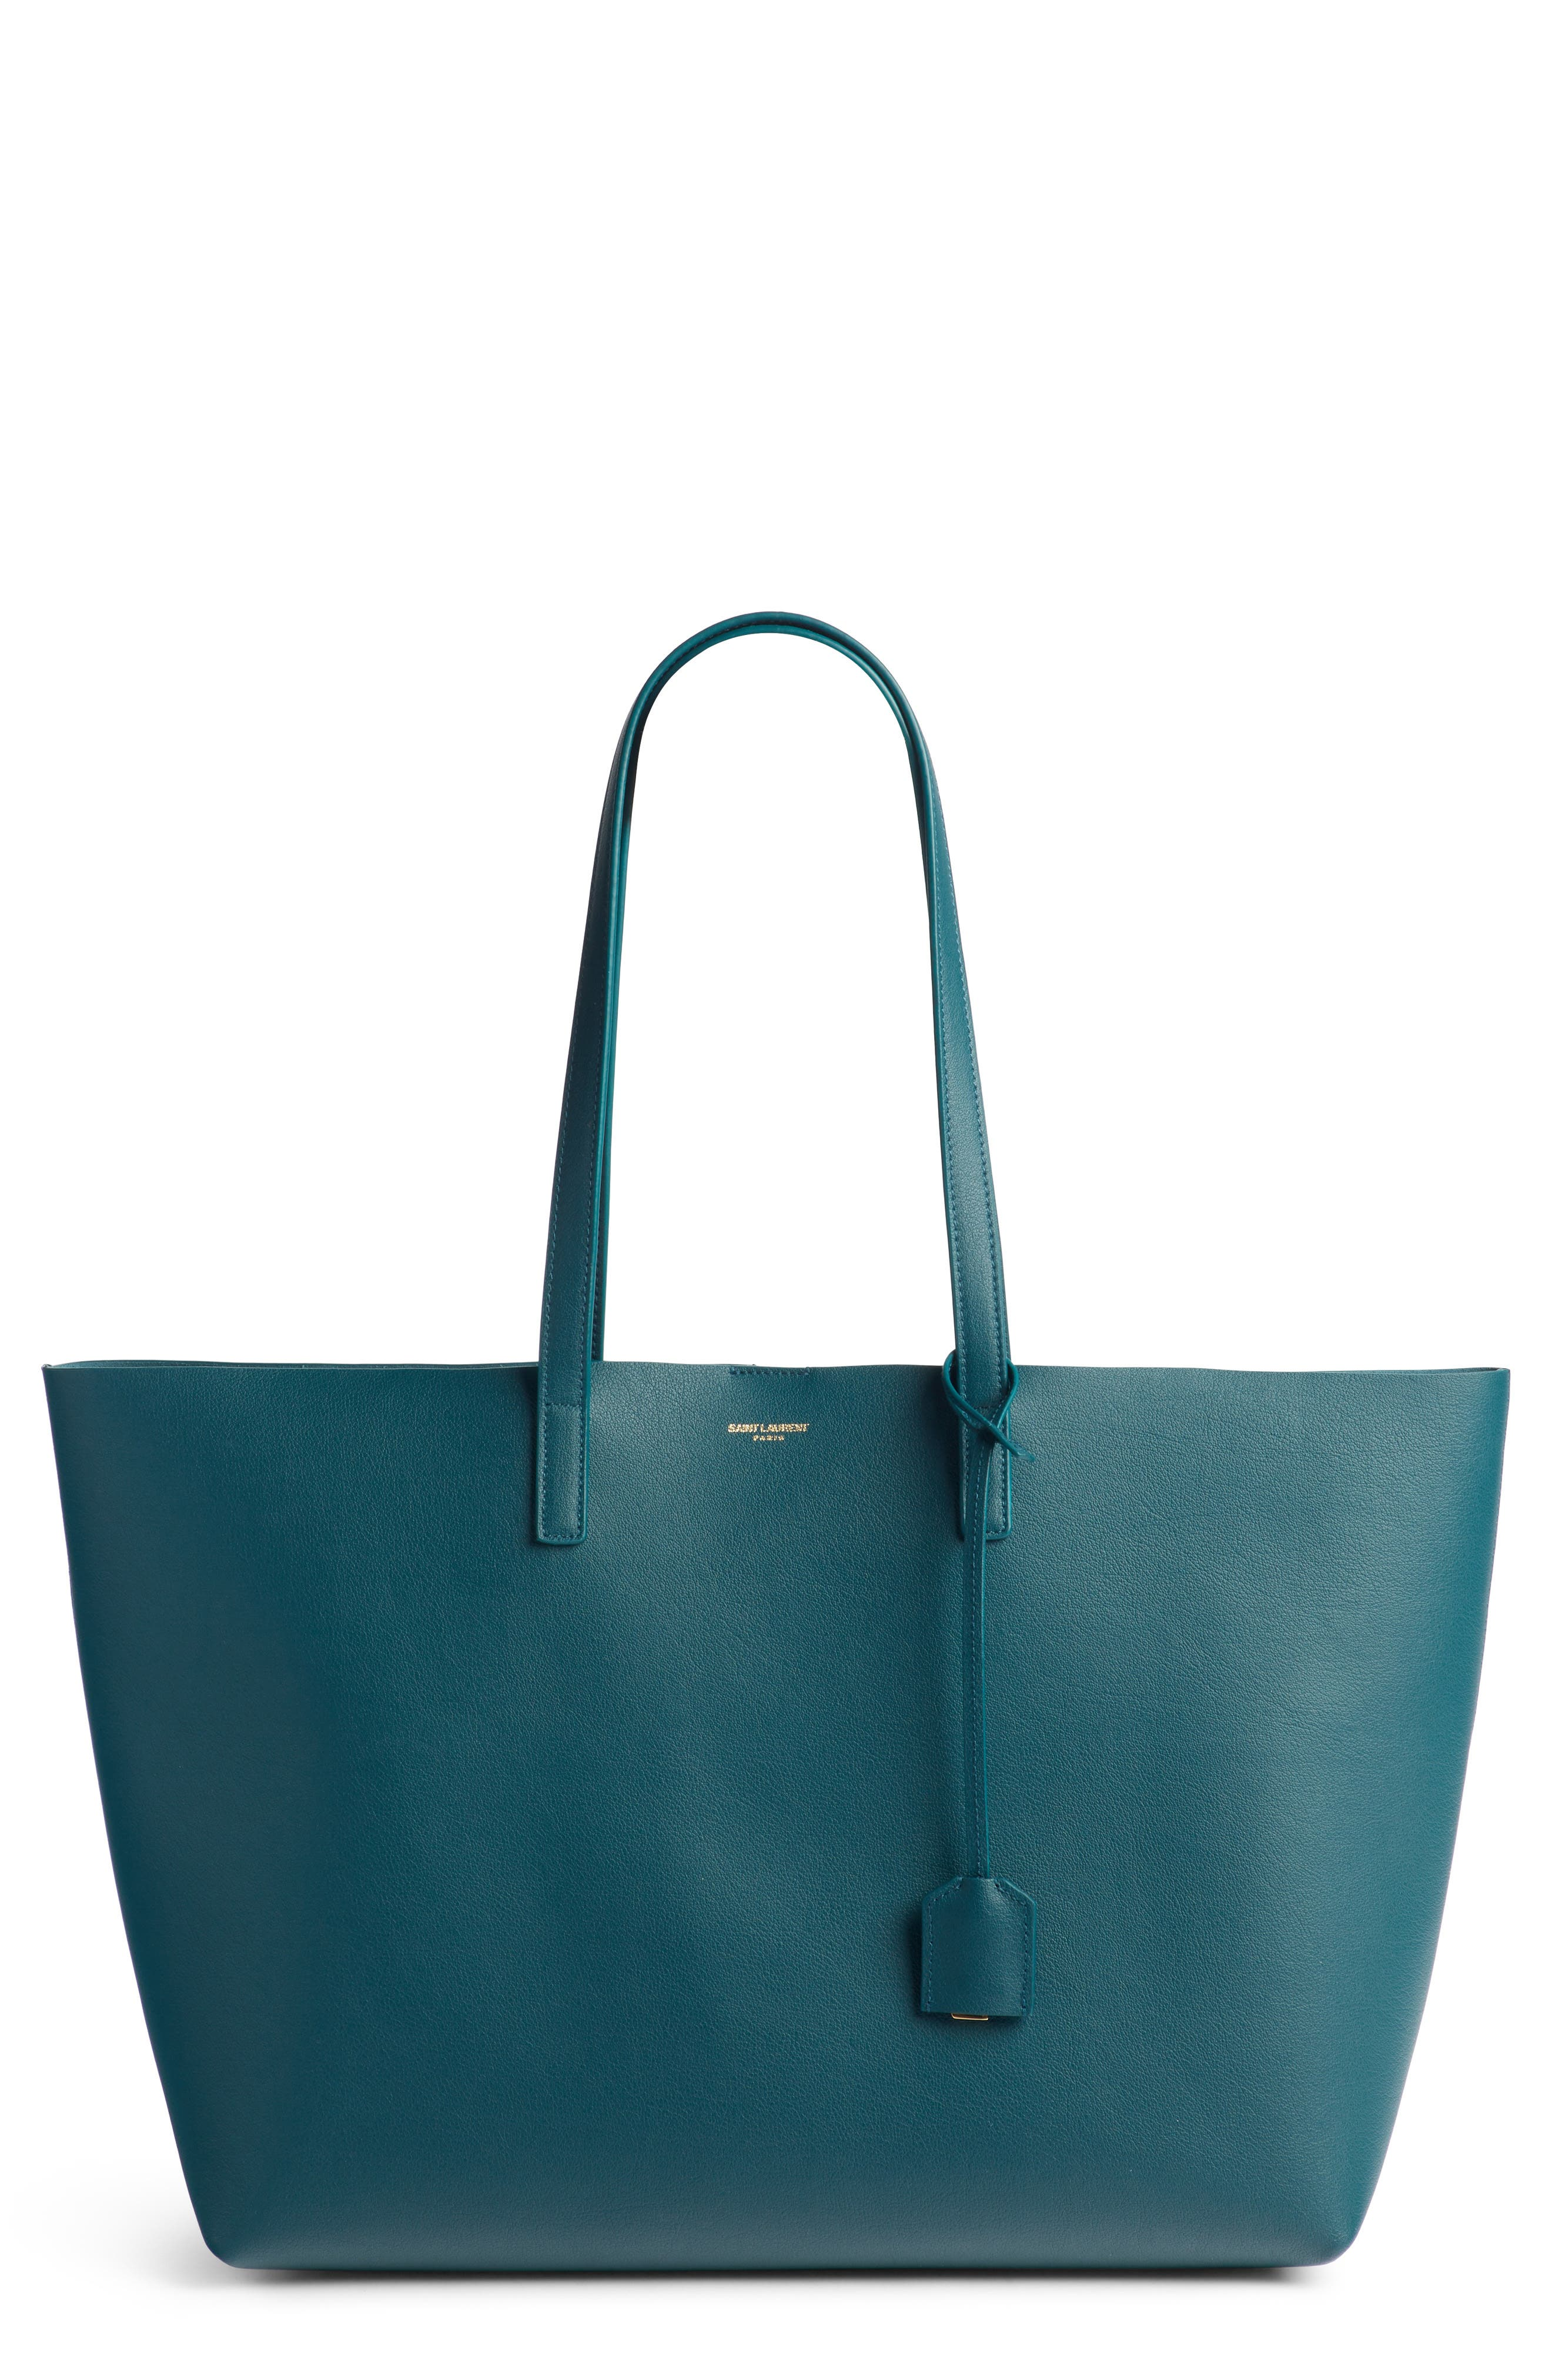 'Shopping' Leather Tote,                         Main,                         color, Dark Turquoise